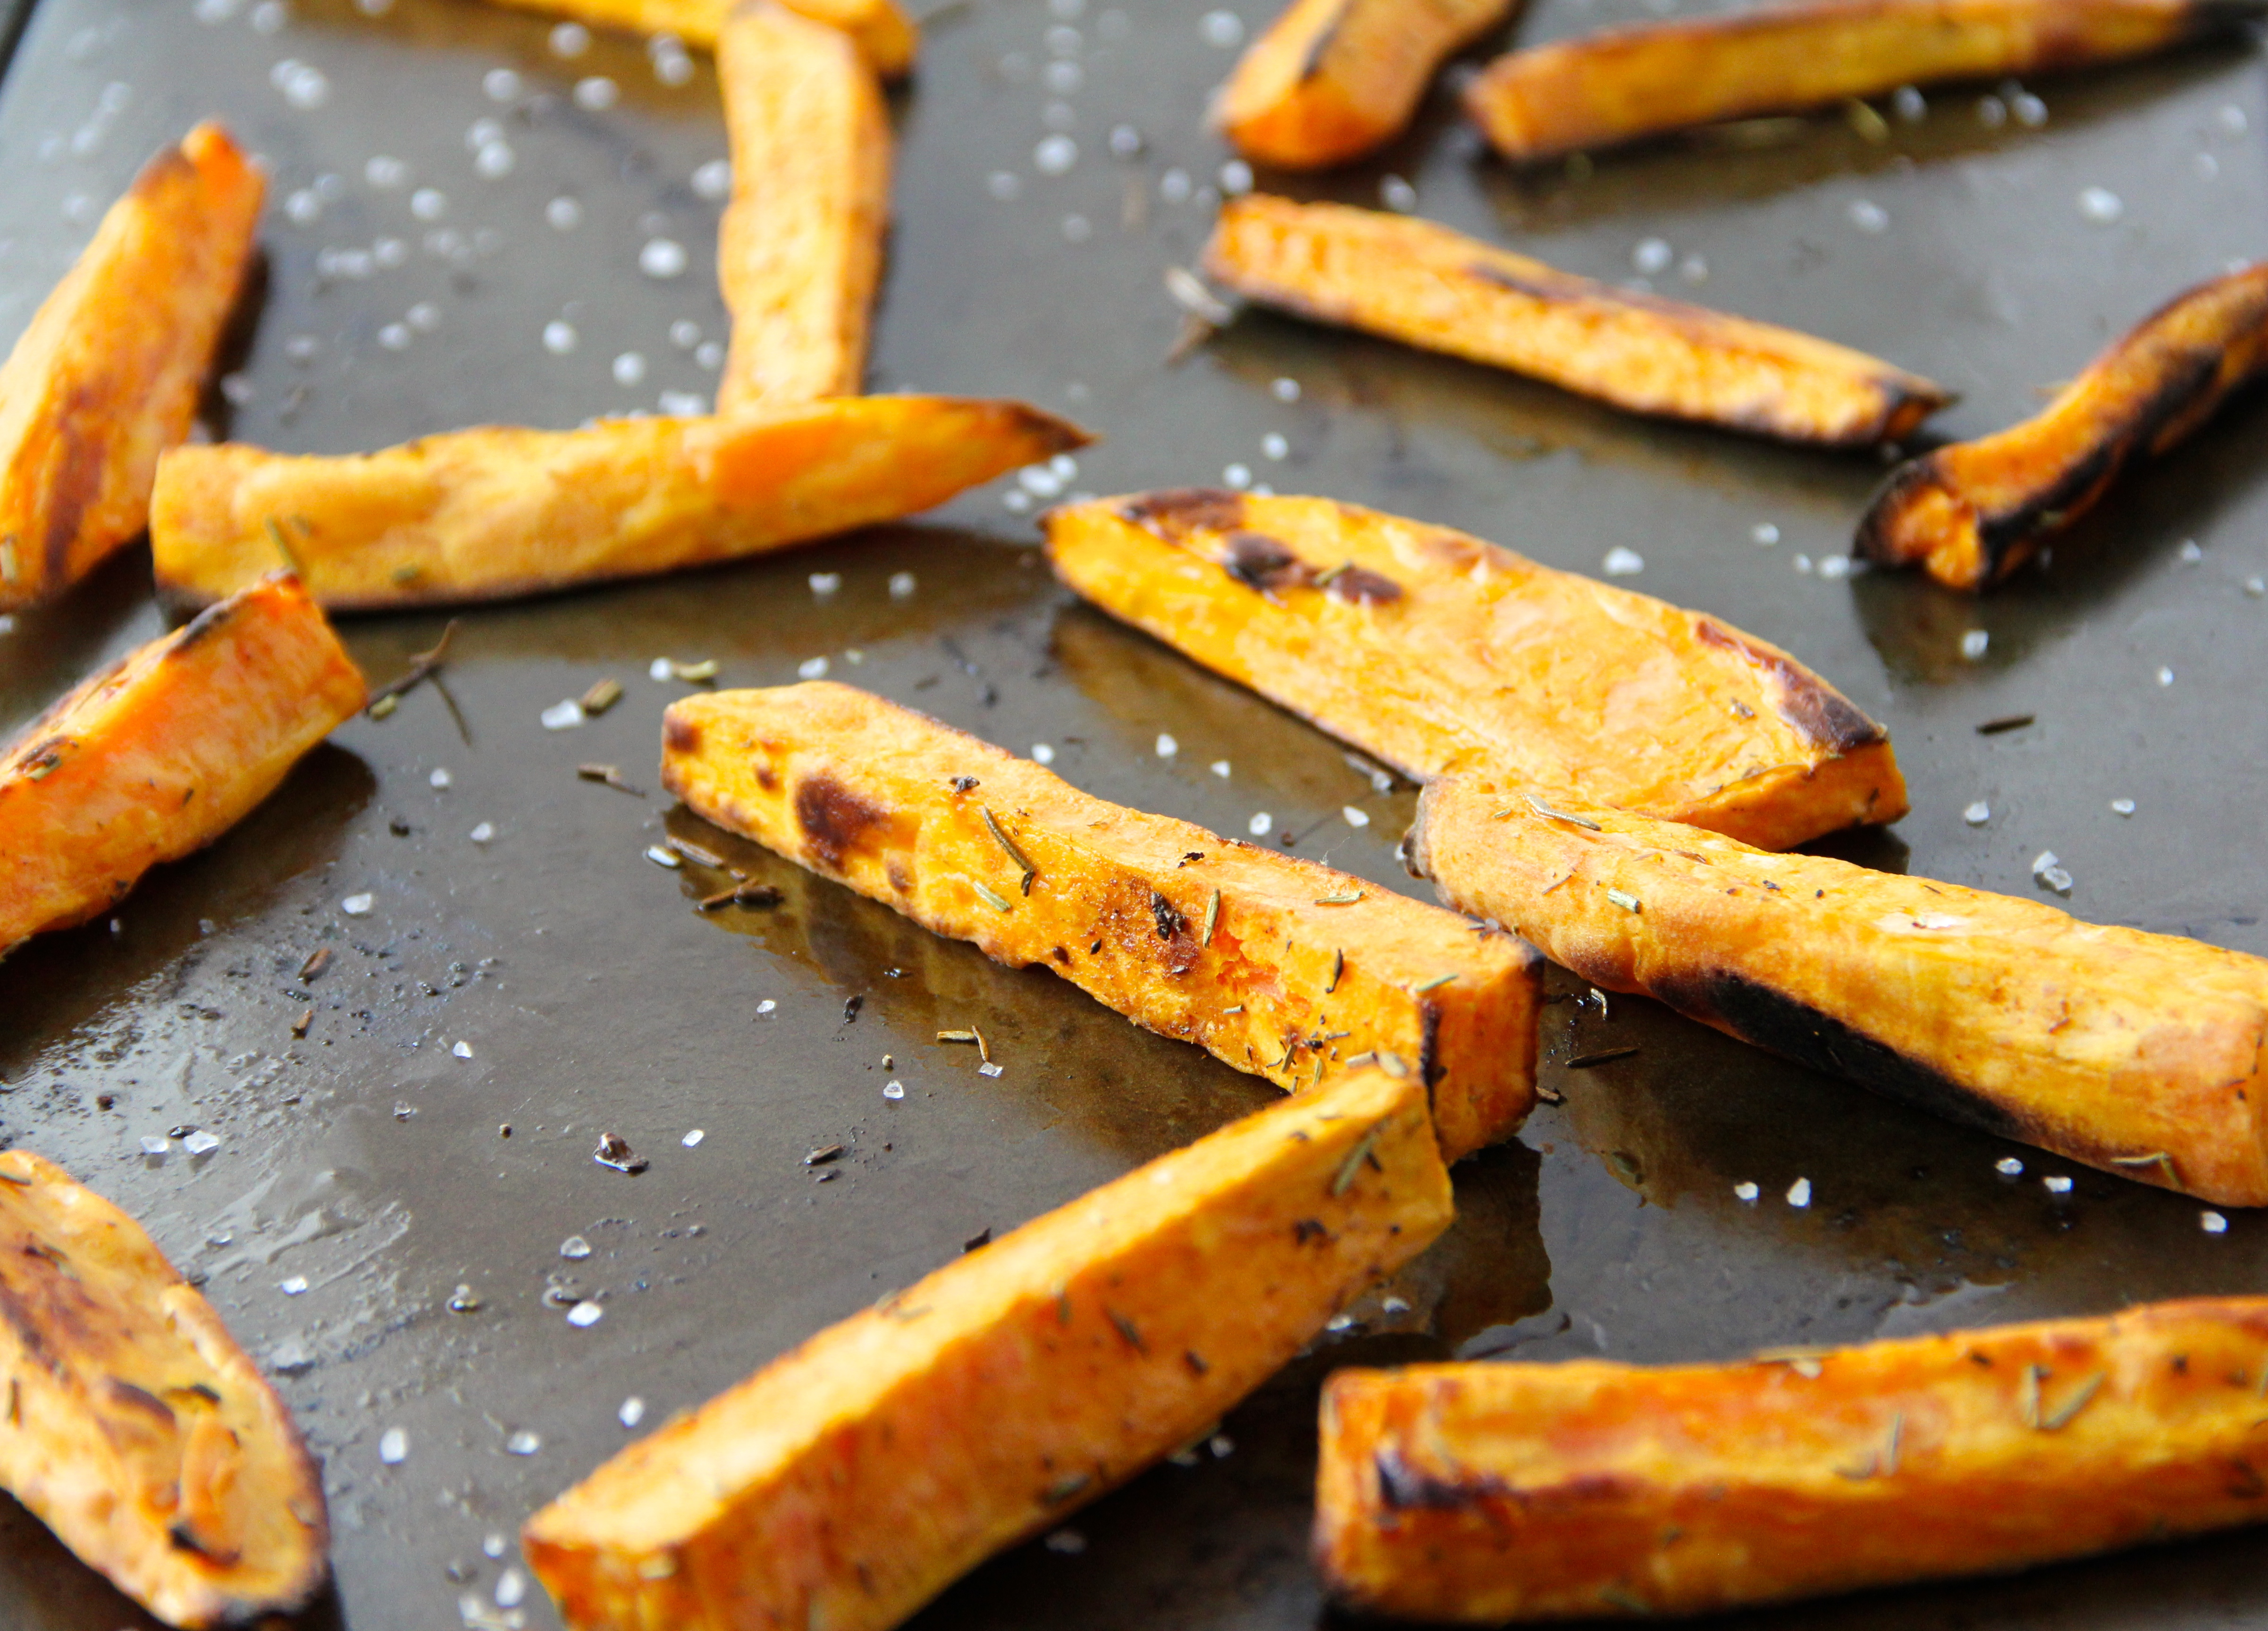 Sweet potato wedges with rosemary sea salt sweet potato wedges with rosemary sea salt emmas little kitchen ccuart Image collections